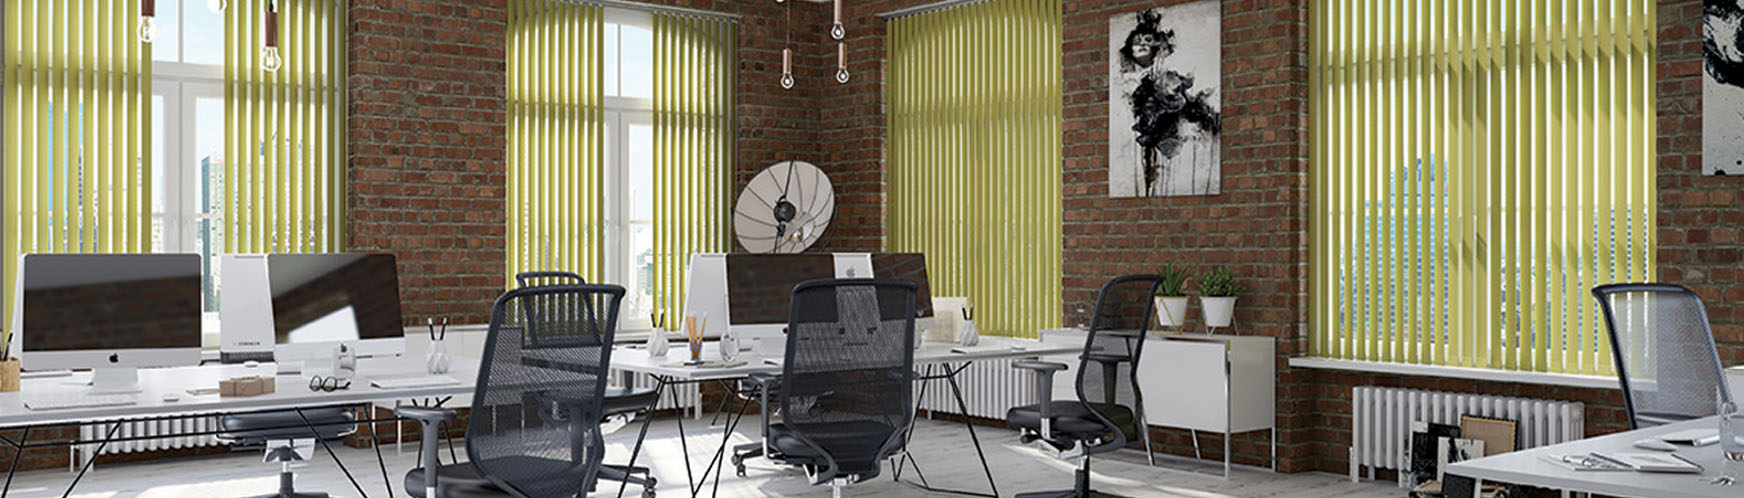 Office blinds and office curtains